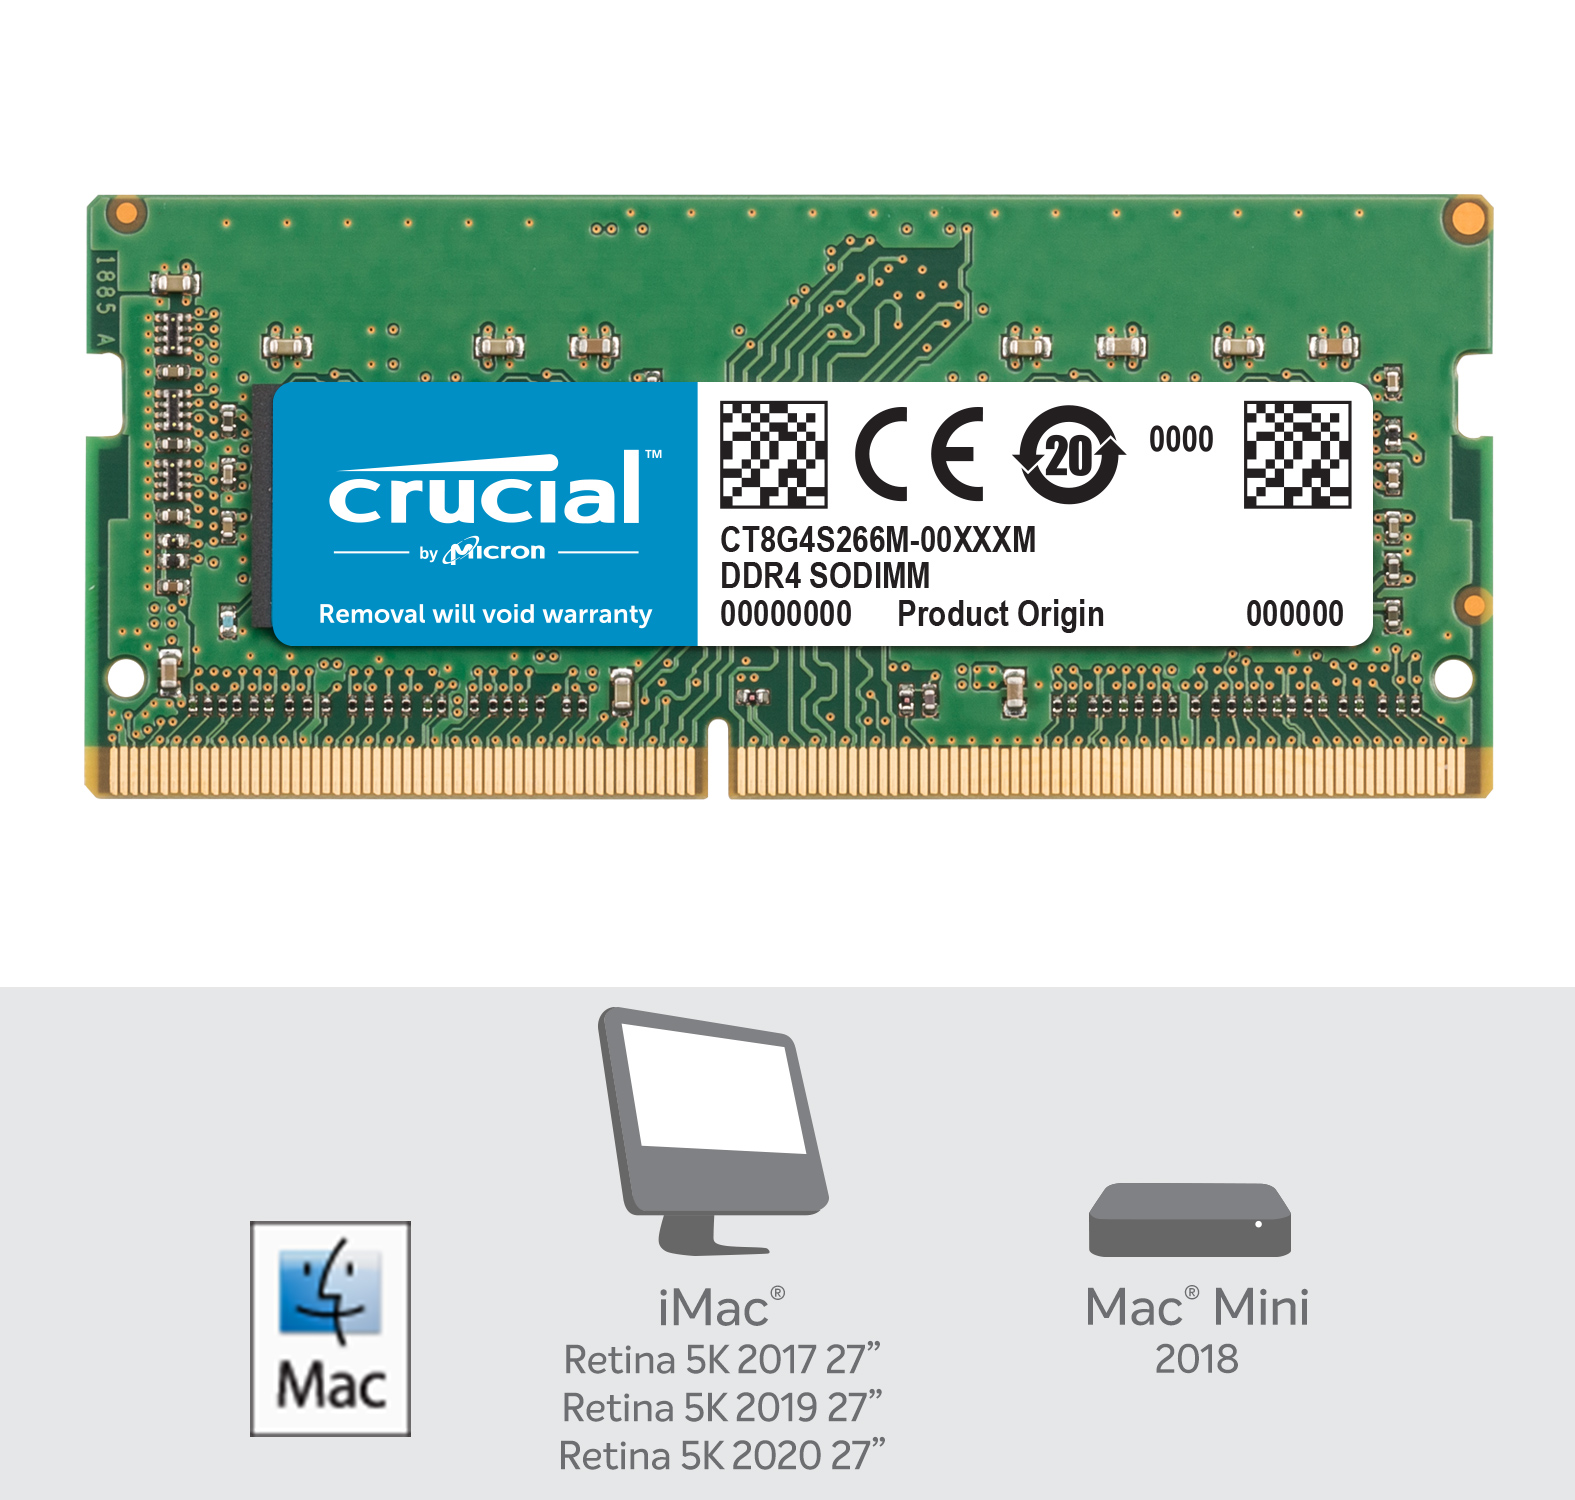 Crucial 8GB DDR4-2666 SODIMM Memory for Mac- view 2